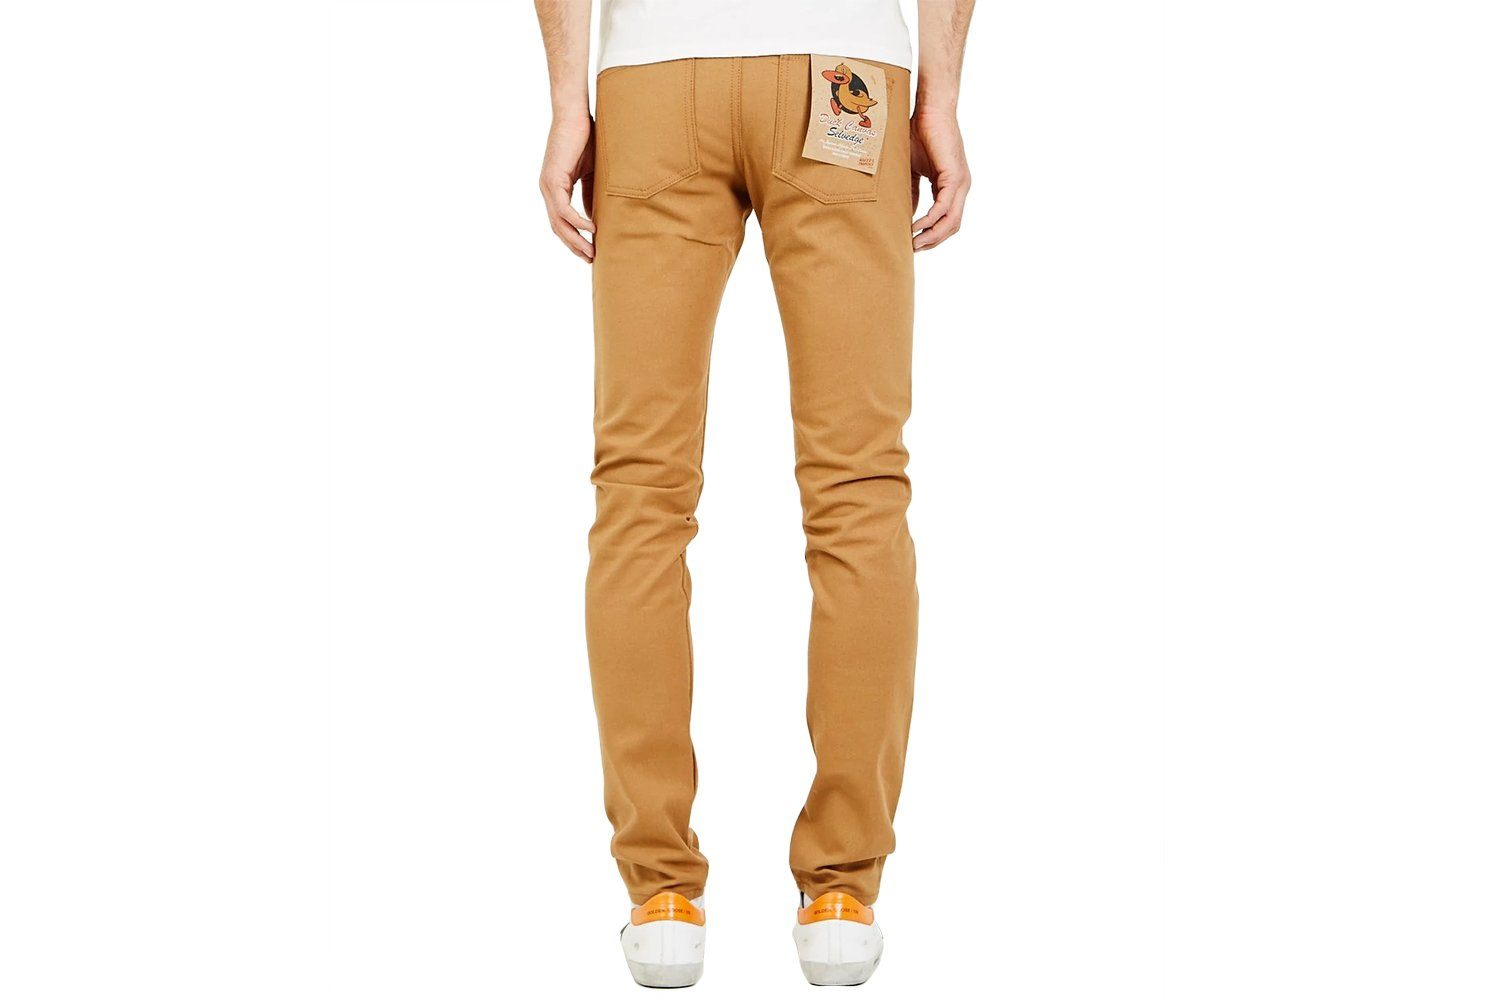 SUPERGUY DUCK CANVAS SELVEDGE-101021400 MENS SOFTGOODS NAKED & FAMOUS